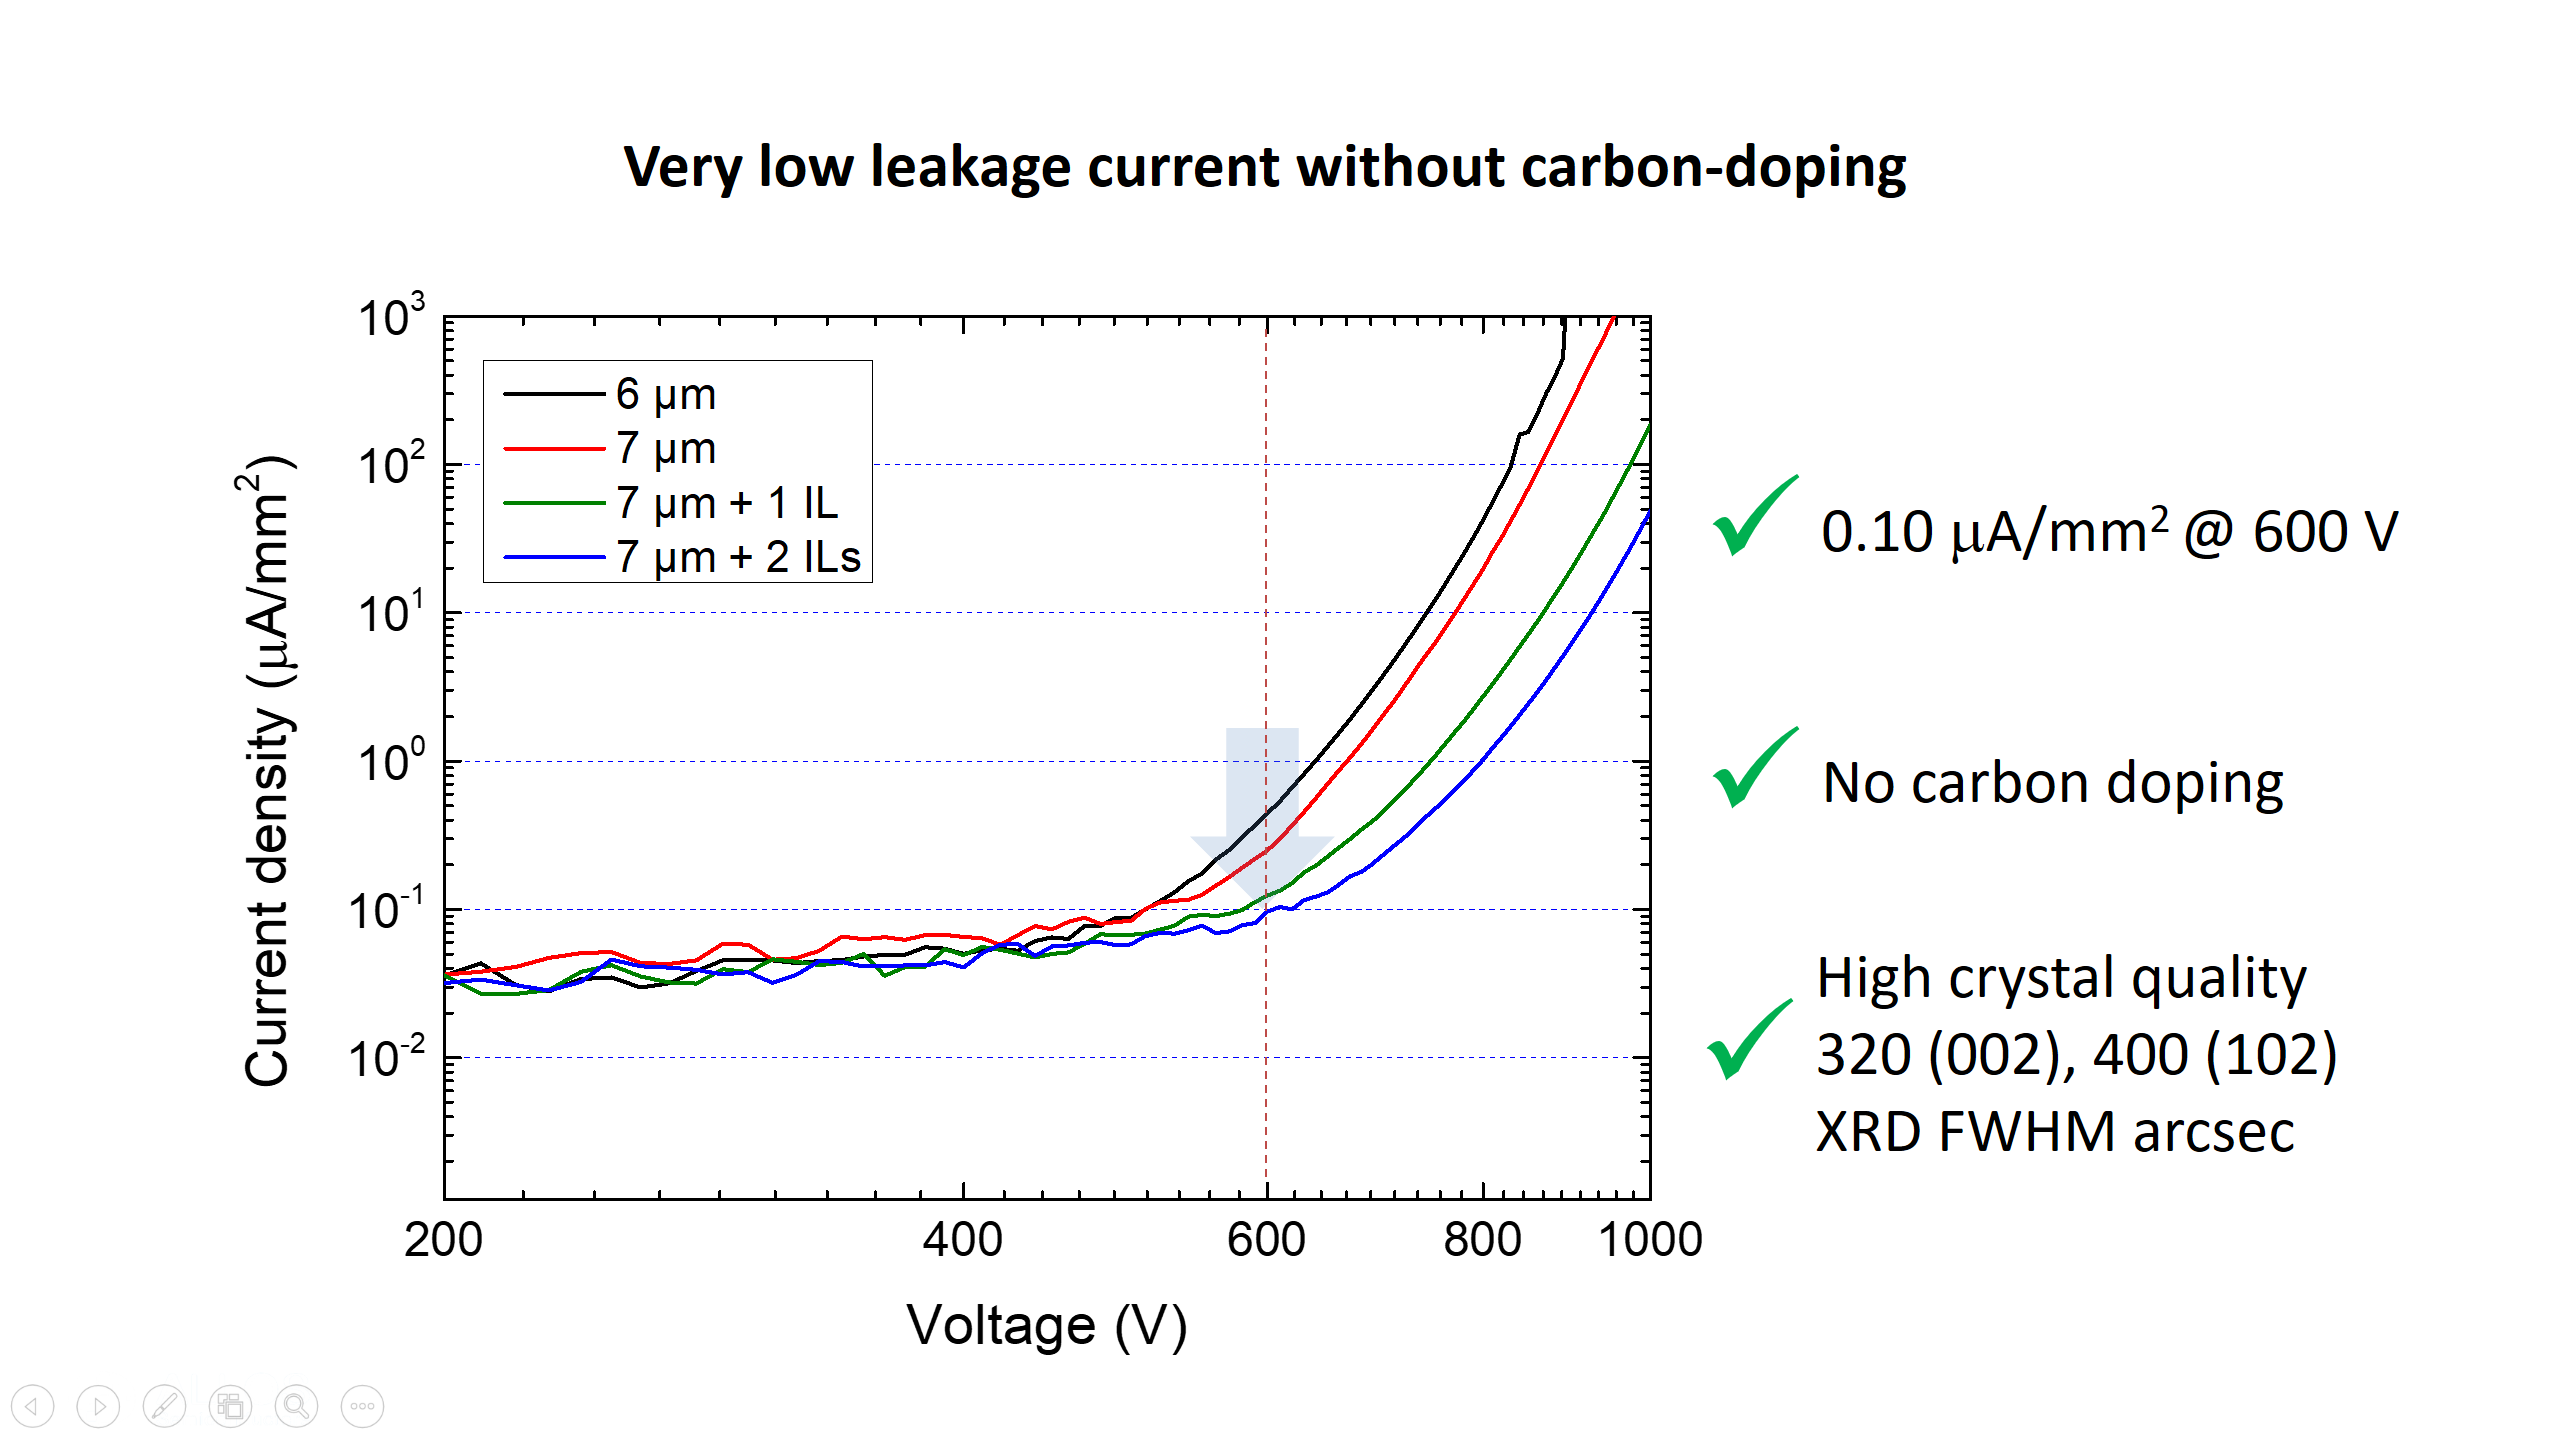 Very low leakage current without doping